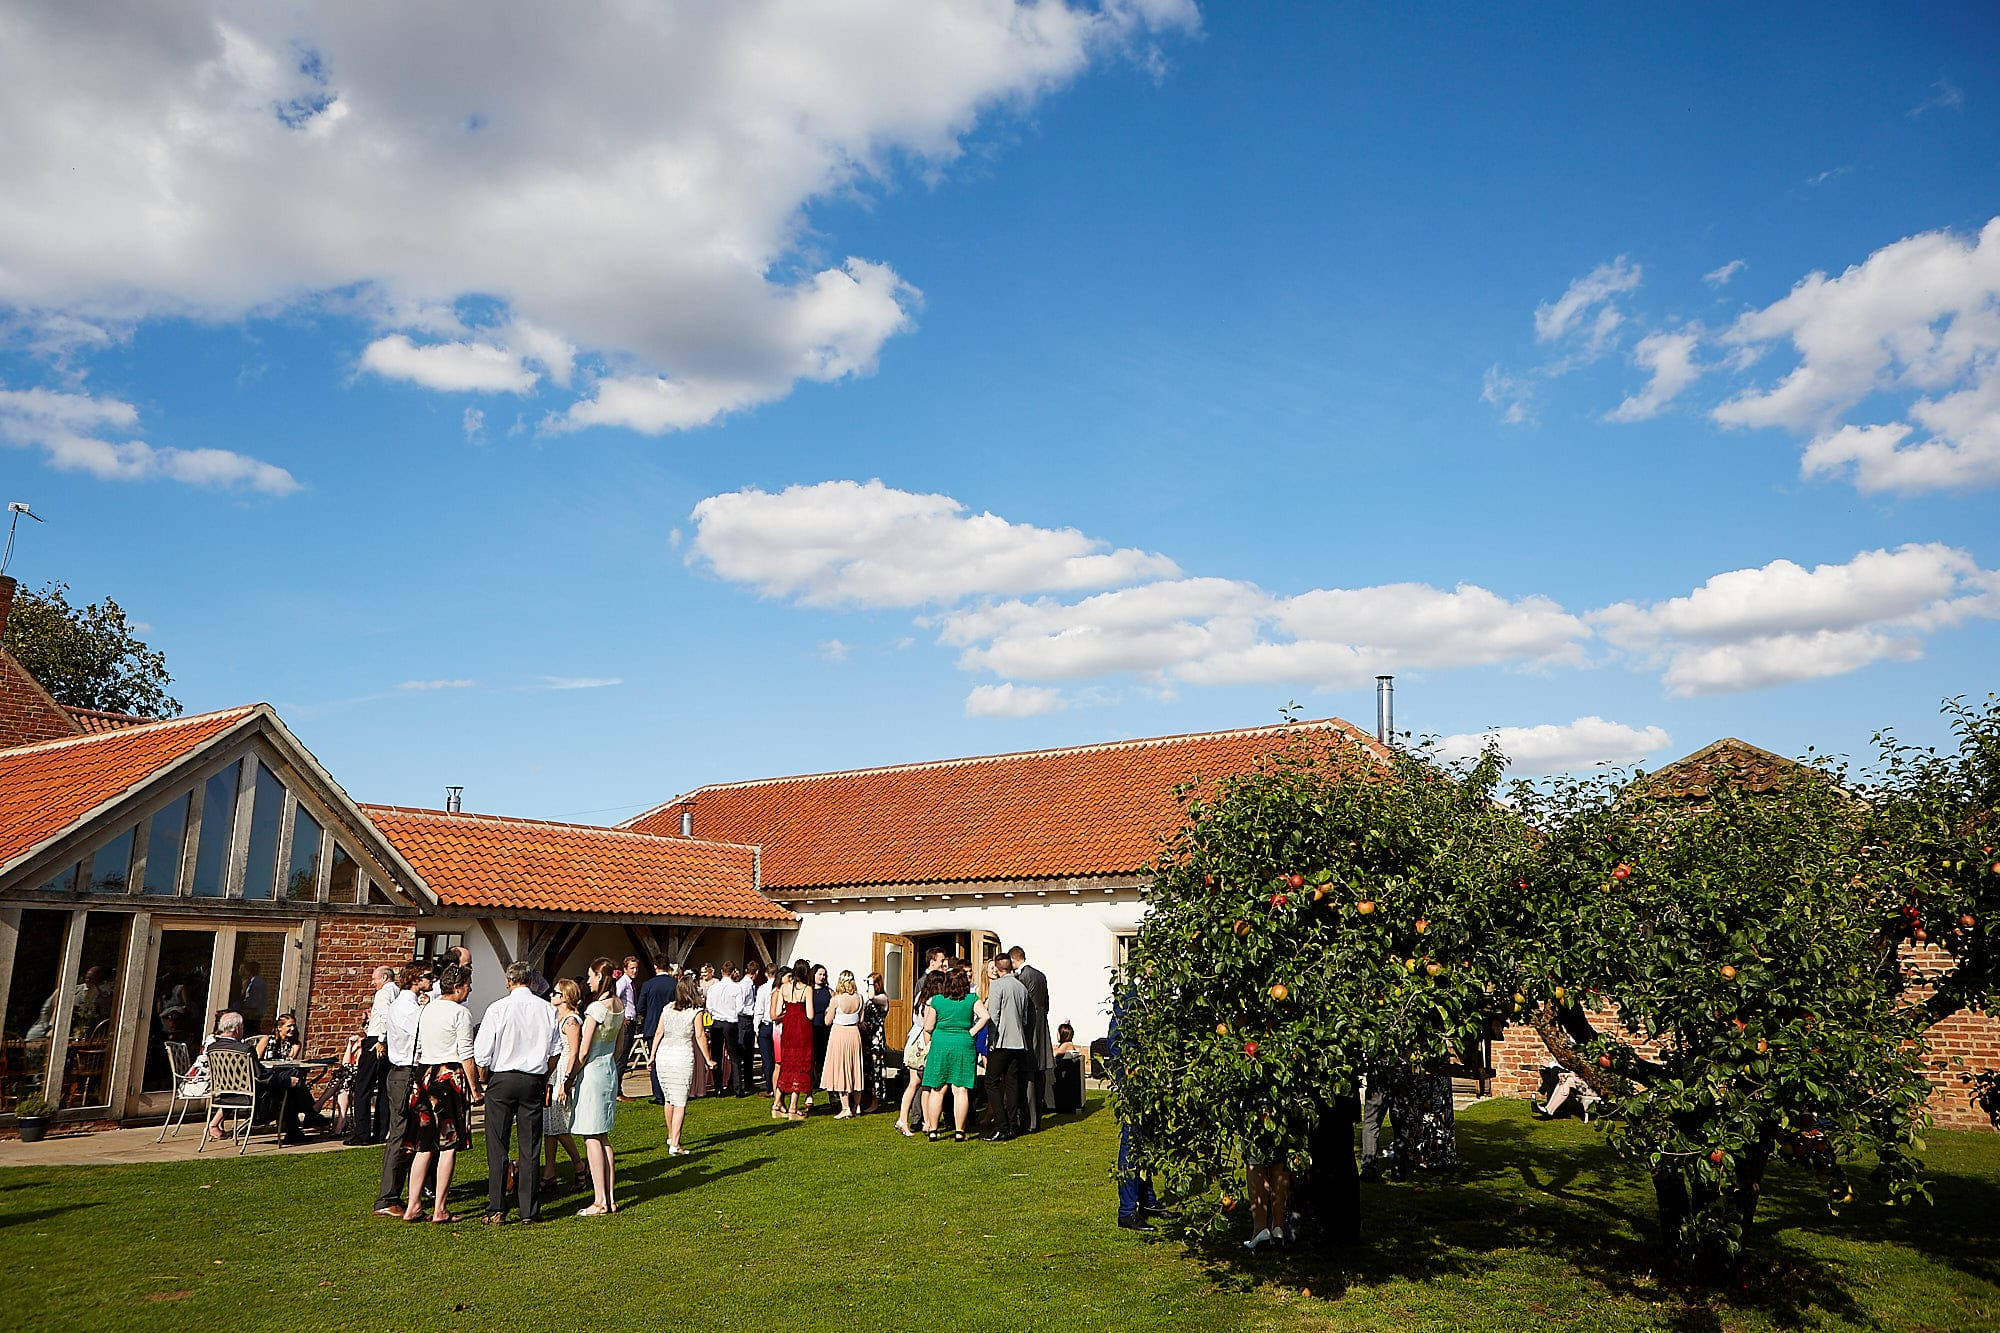 The outdoor space at Abbey Farm being enjoyed by guests. There's a blue ky with an apple tree in the foreground.